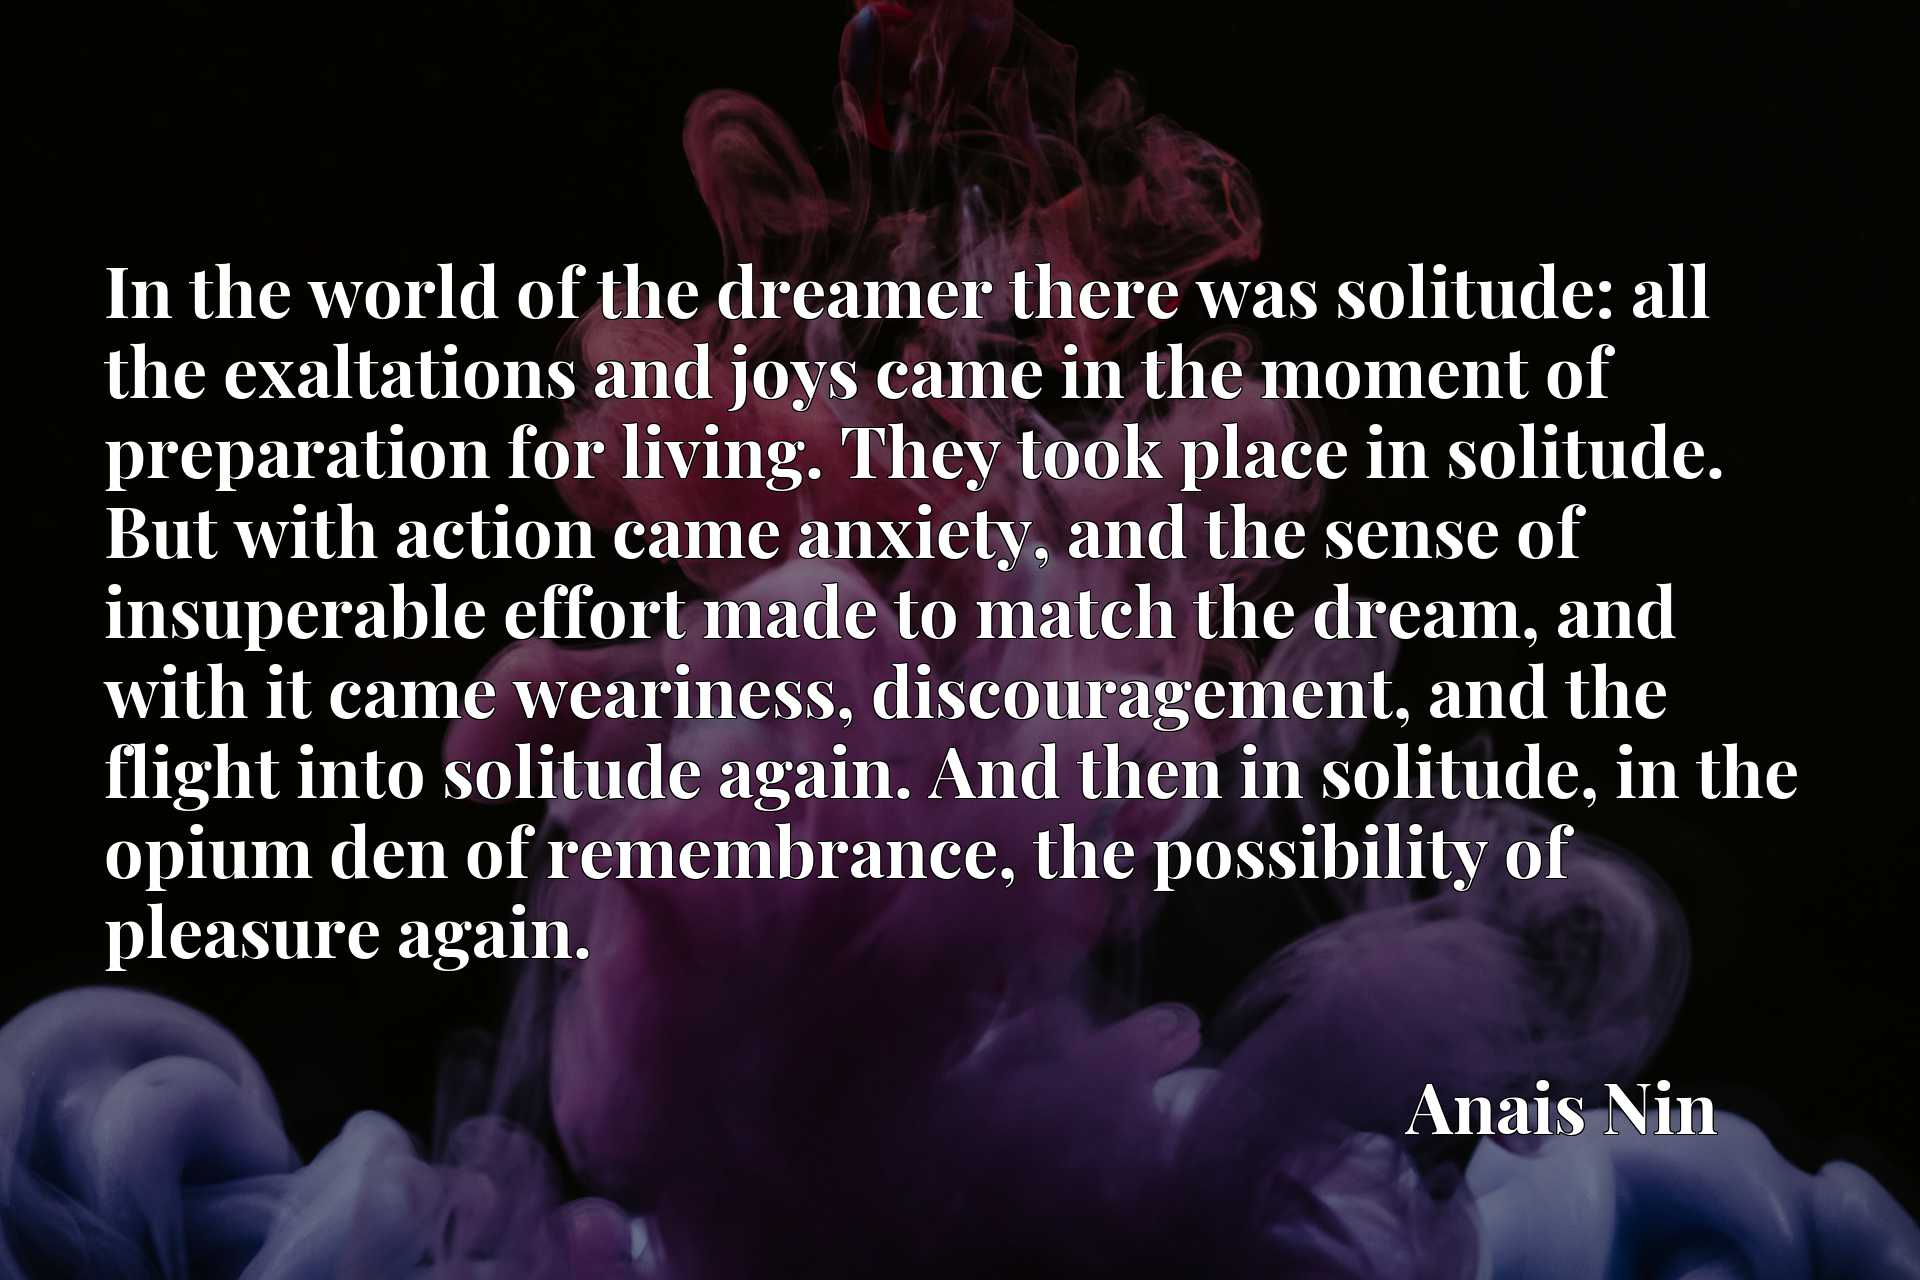 In the world of the dreamer there was solitude: all the exaltations and joys came in the moment of preparation for living. They took place in solitude. But with action came anxiety, and the sense of insuperable effort made to match the dream, and with it came weariness, discouragement, and the flight into solitude again. And then in solitude, in the opium den of remembrance, the possibility of pleasure again.